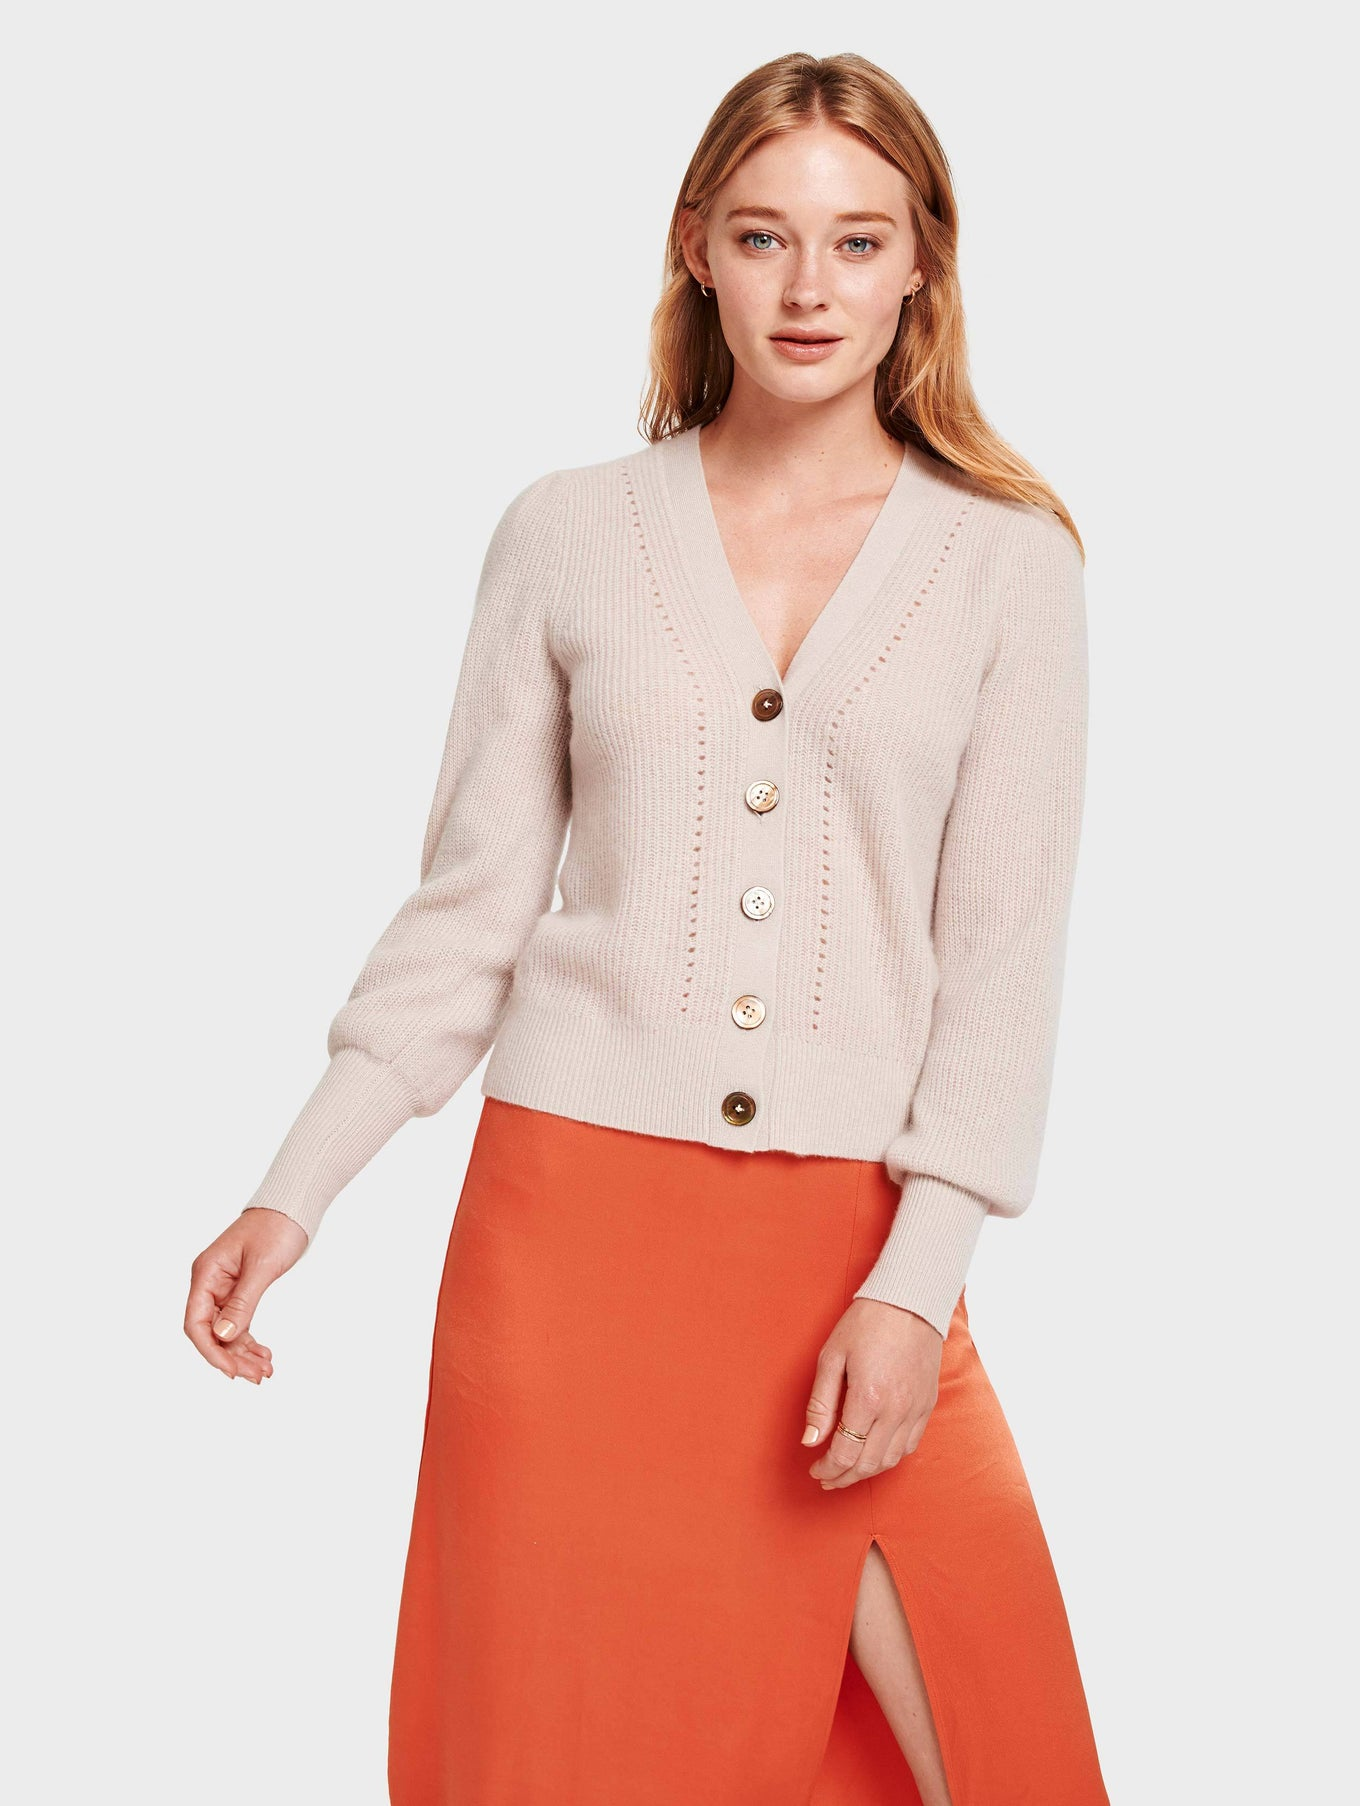 Cashmere Exaggerated Puff Sleeve Cardigan - Sandstone Heather - Image 3